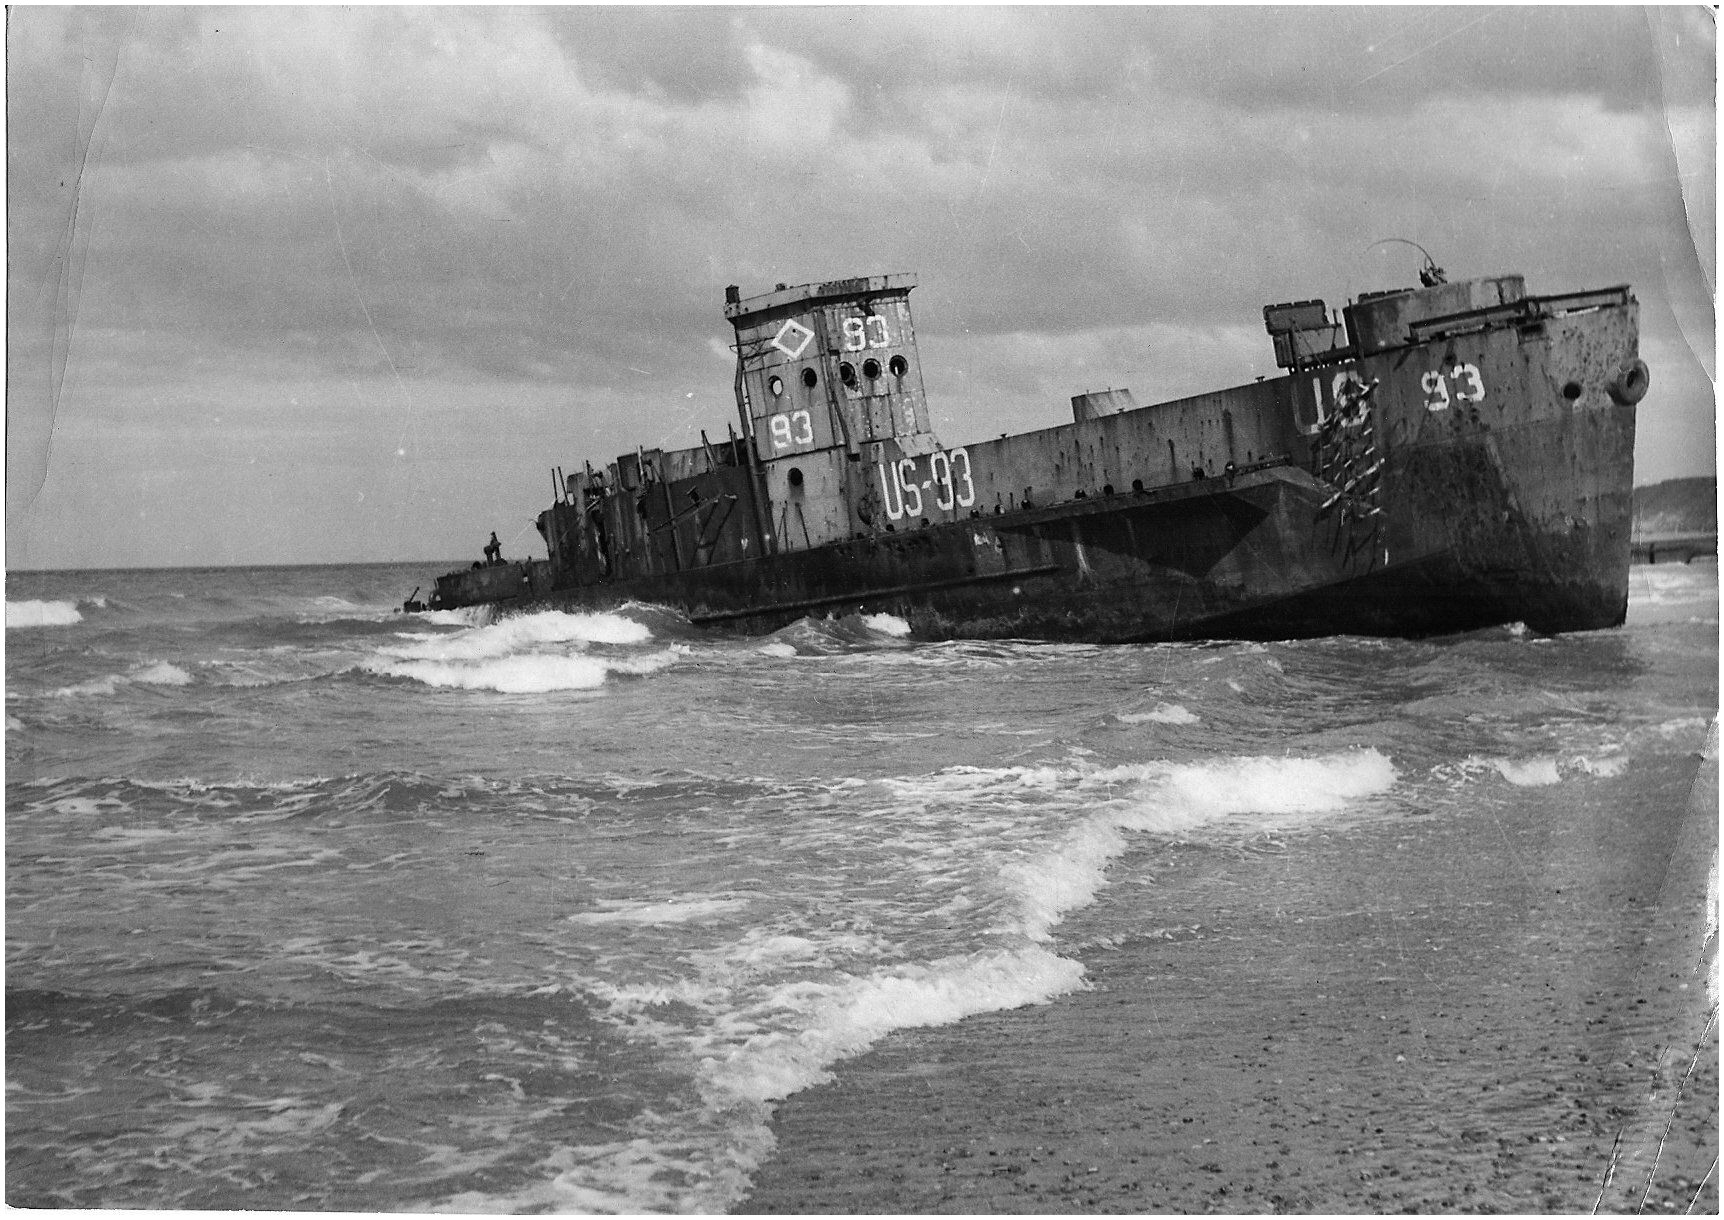 USS LCI L 93 stripped and abandoned on Omaha Beach date unknown